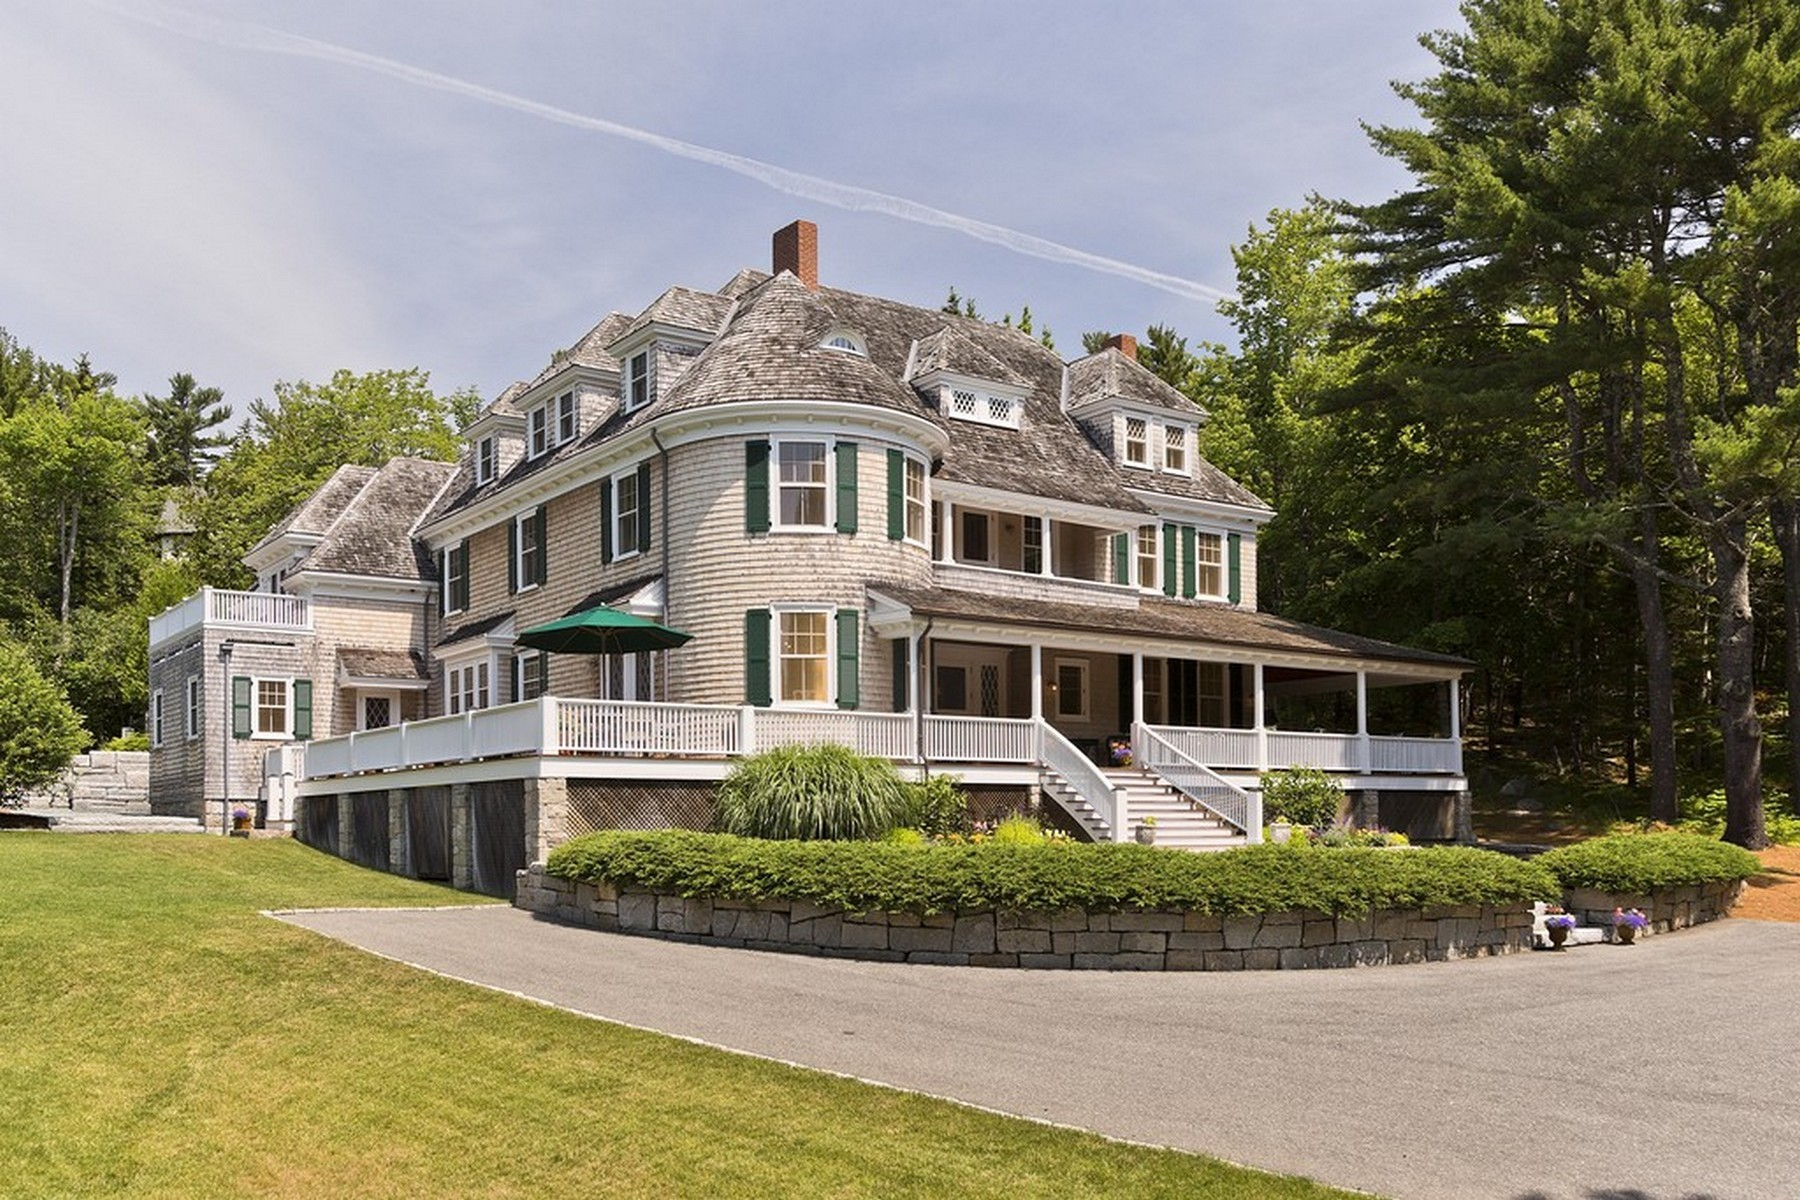 واحد منزل الأسرة للـ Sale في Gardencourt 28 Harborside Rd, Northeast Harbor, Maine, 04662 United States